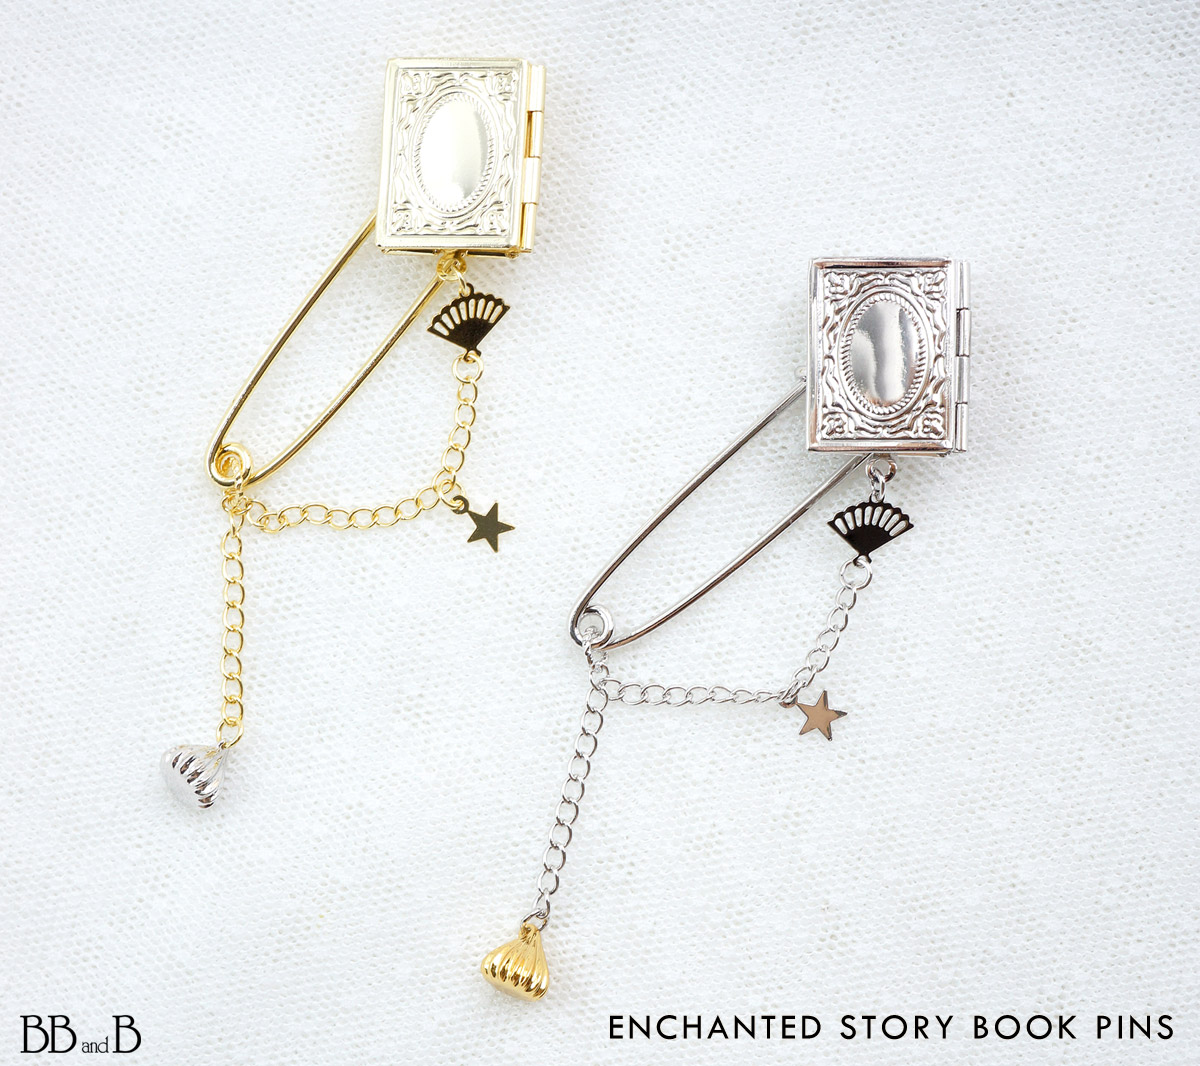 Enchanted Story Book Pins